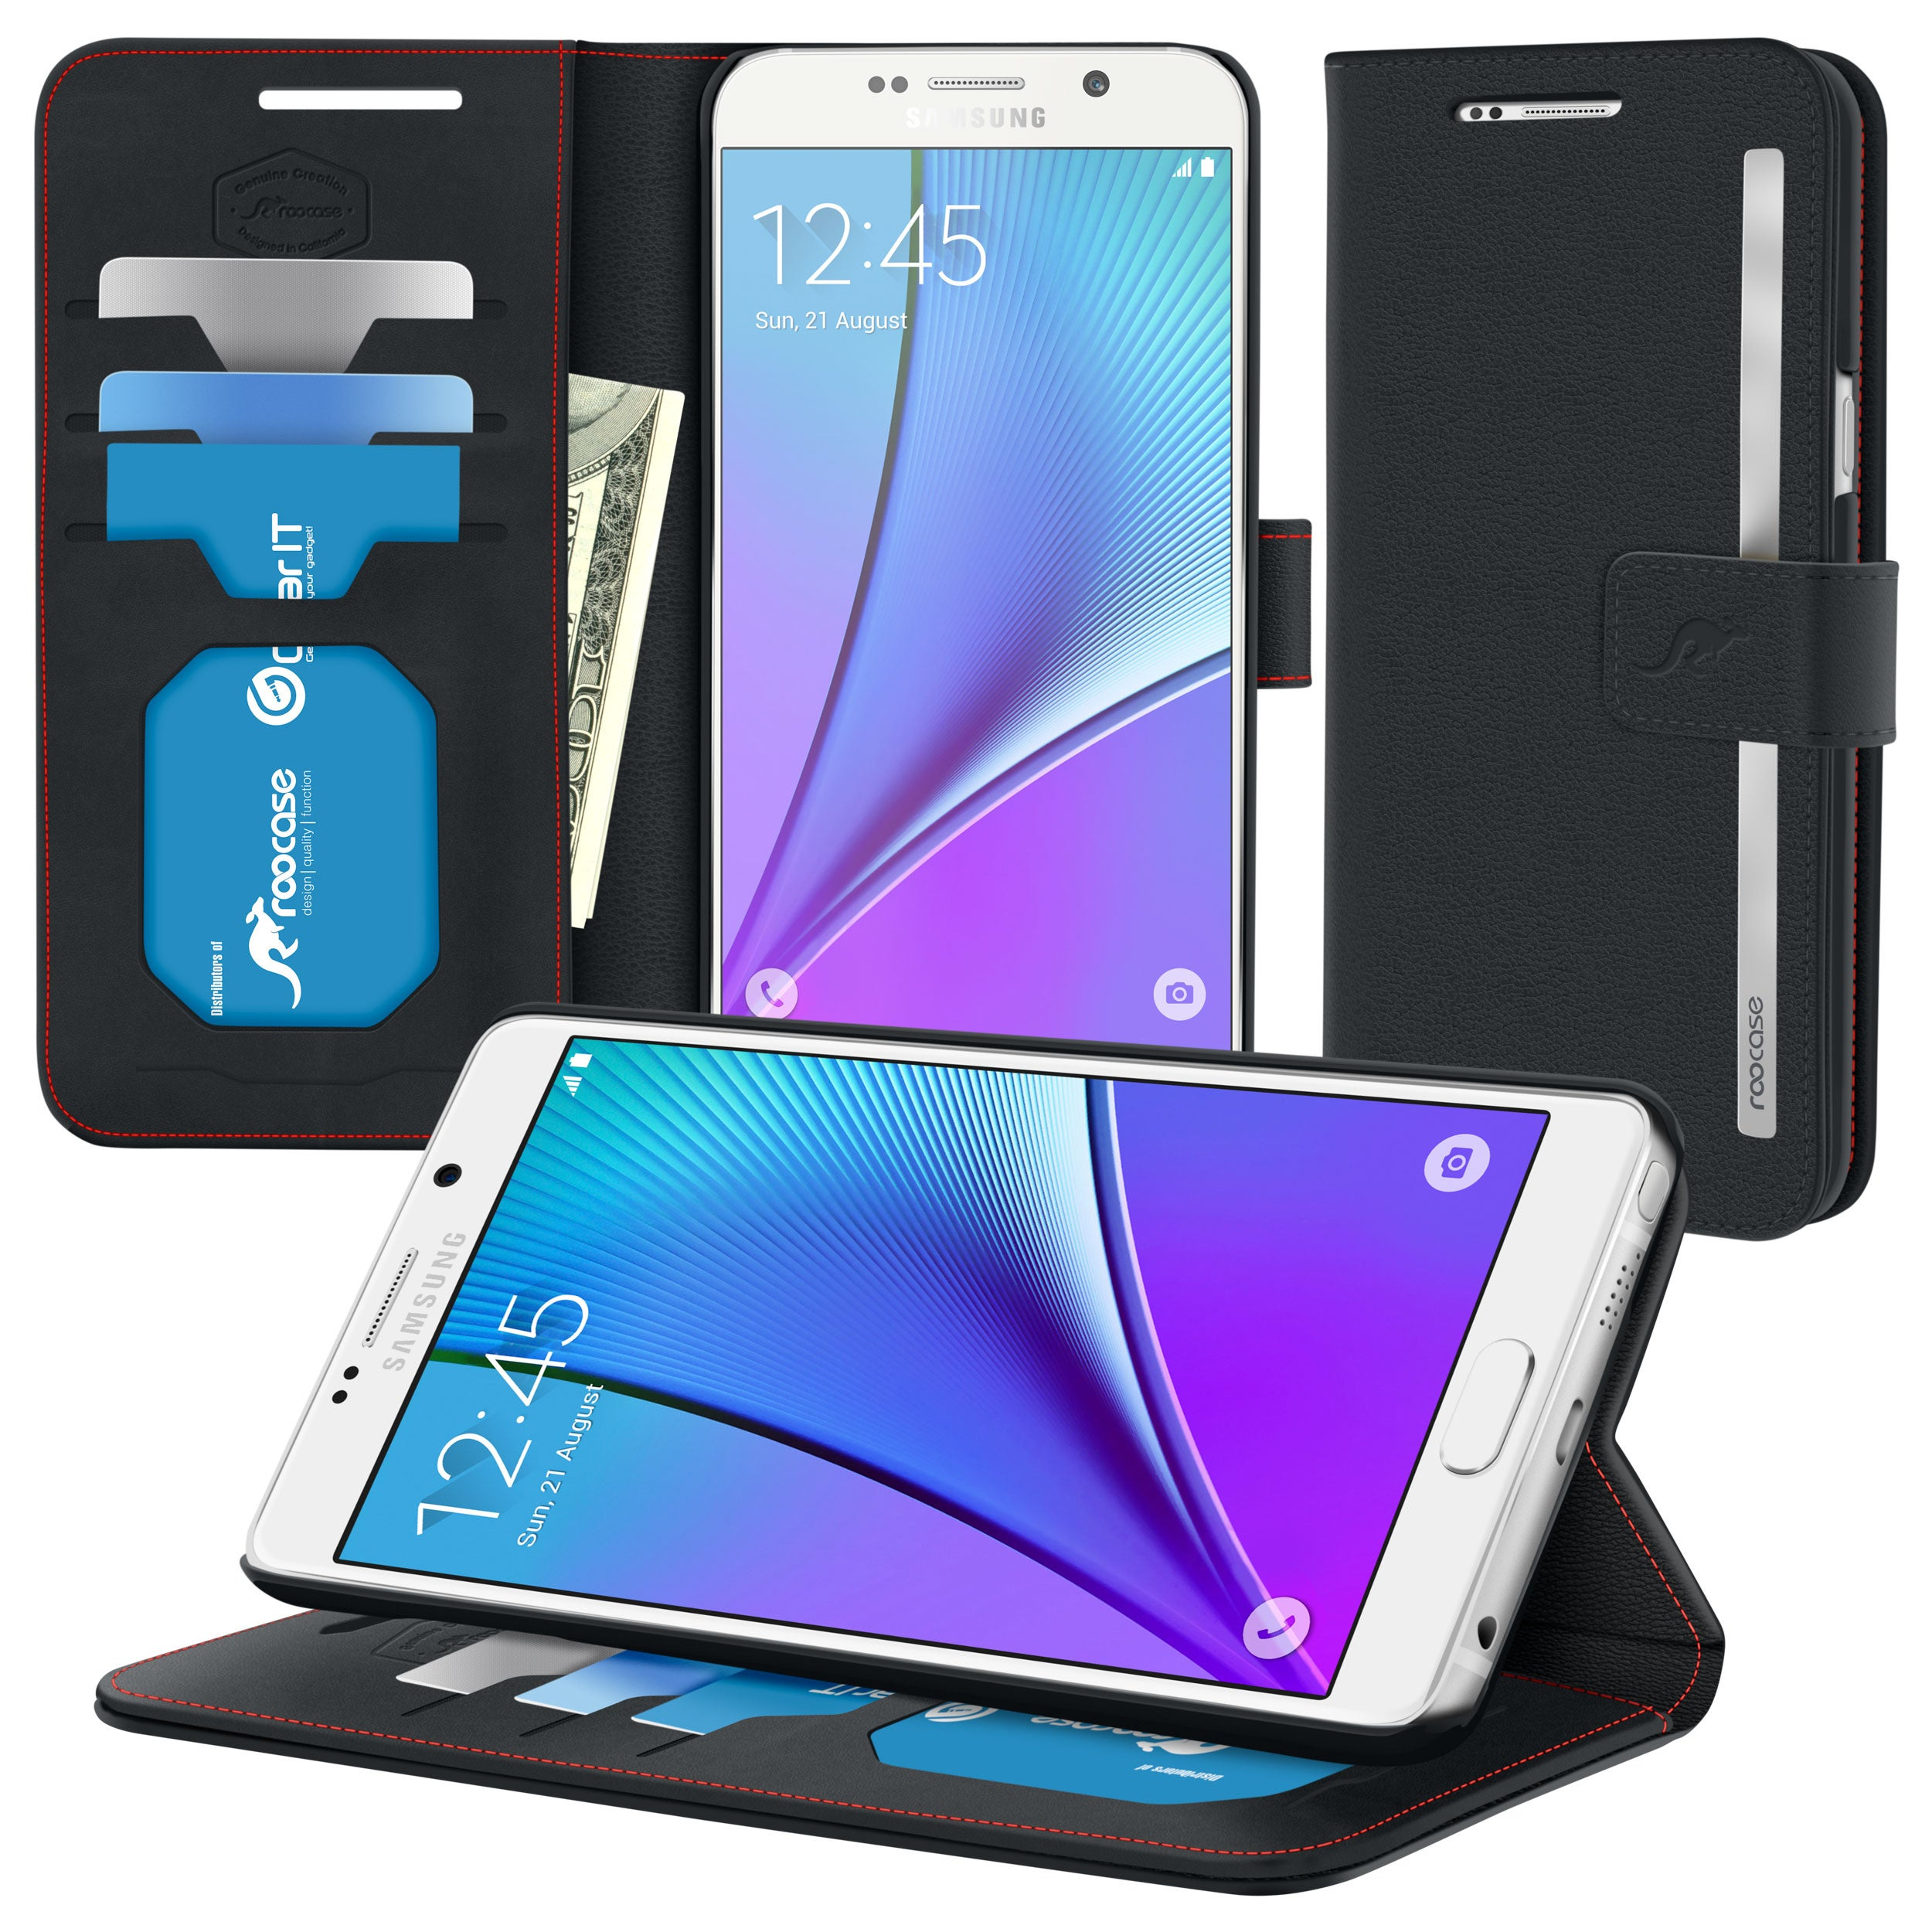 roocase Prestige Folio Case for Samsung Galaxy Note5